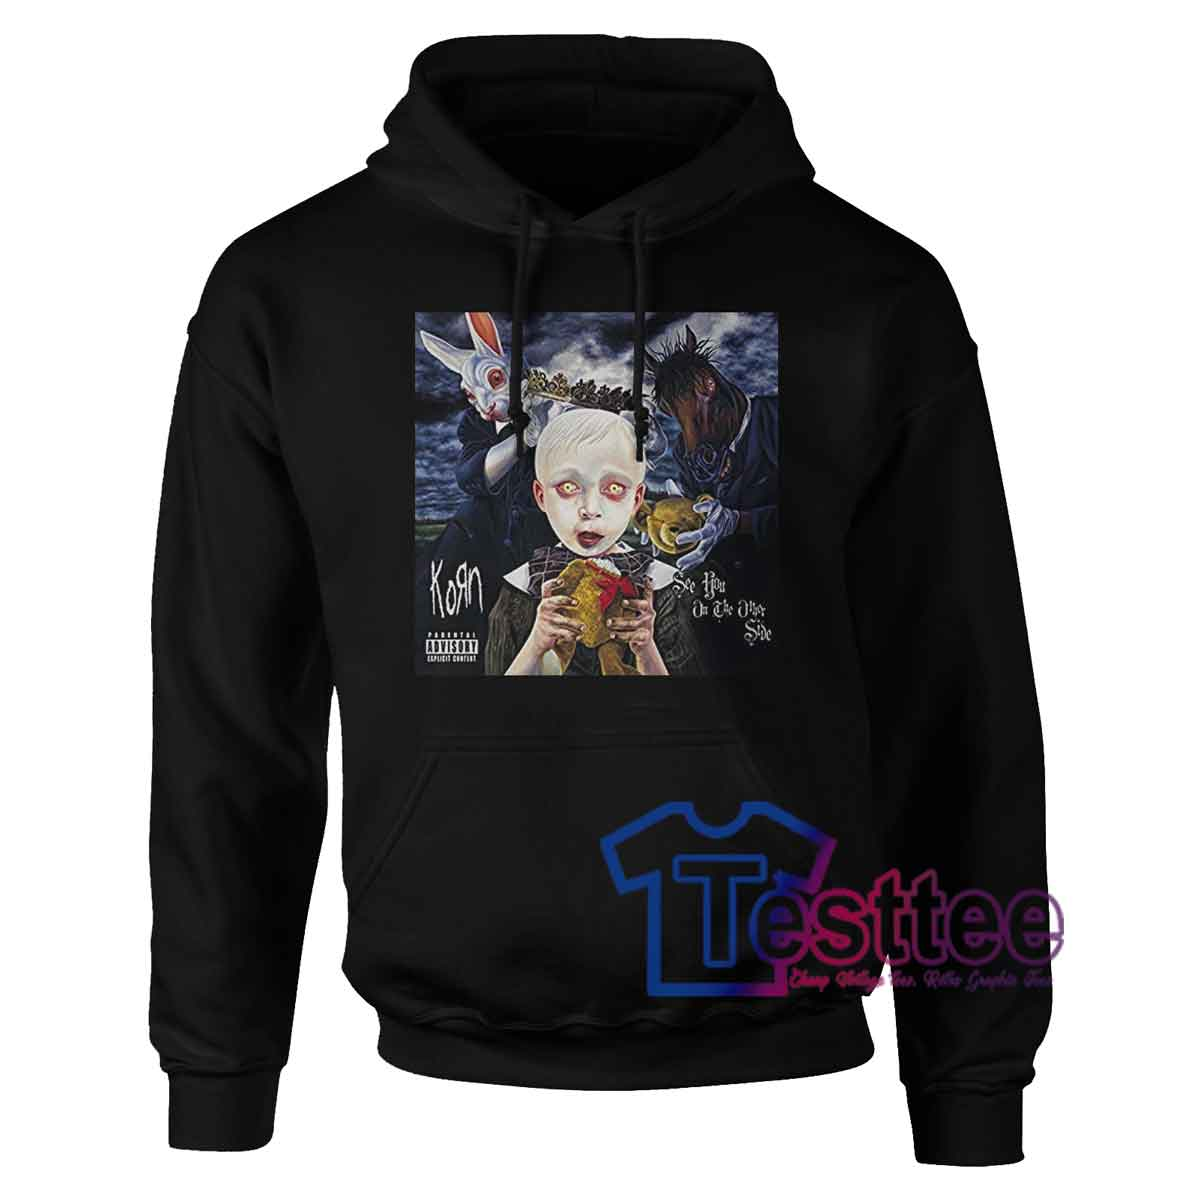 Korn See You On The Other Side Hoodie Korn Merch Testtee Com